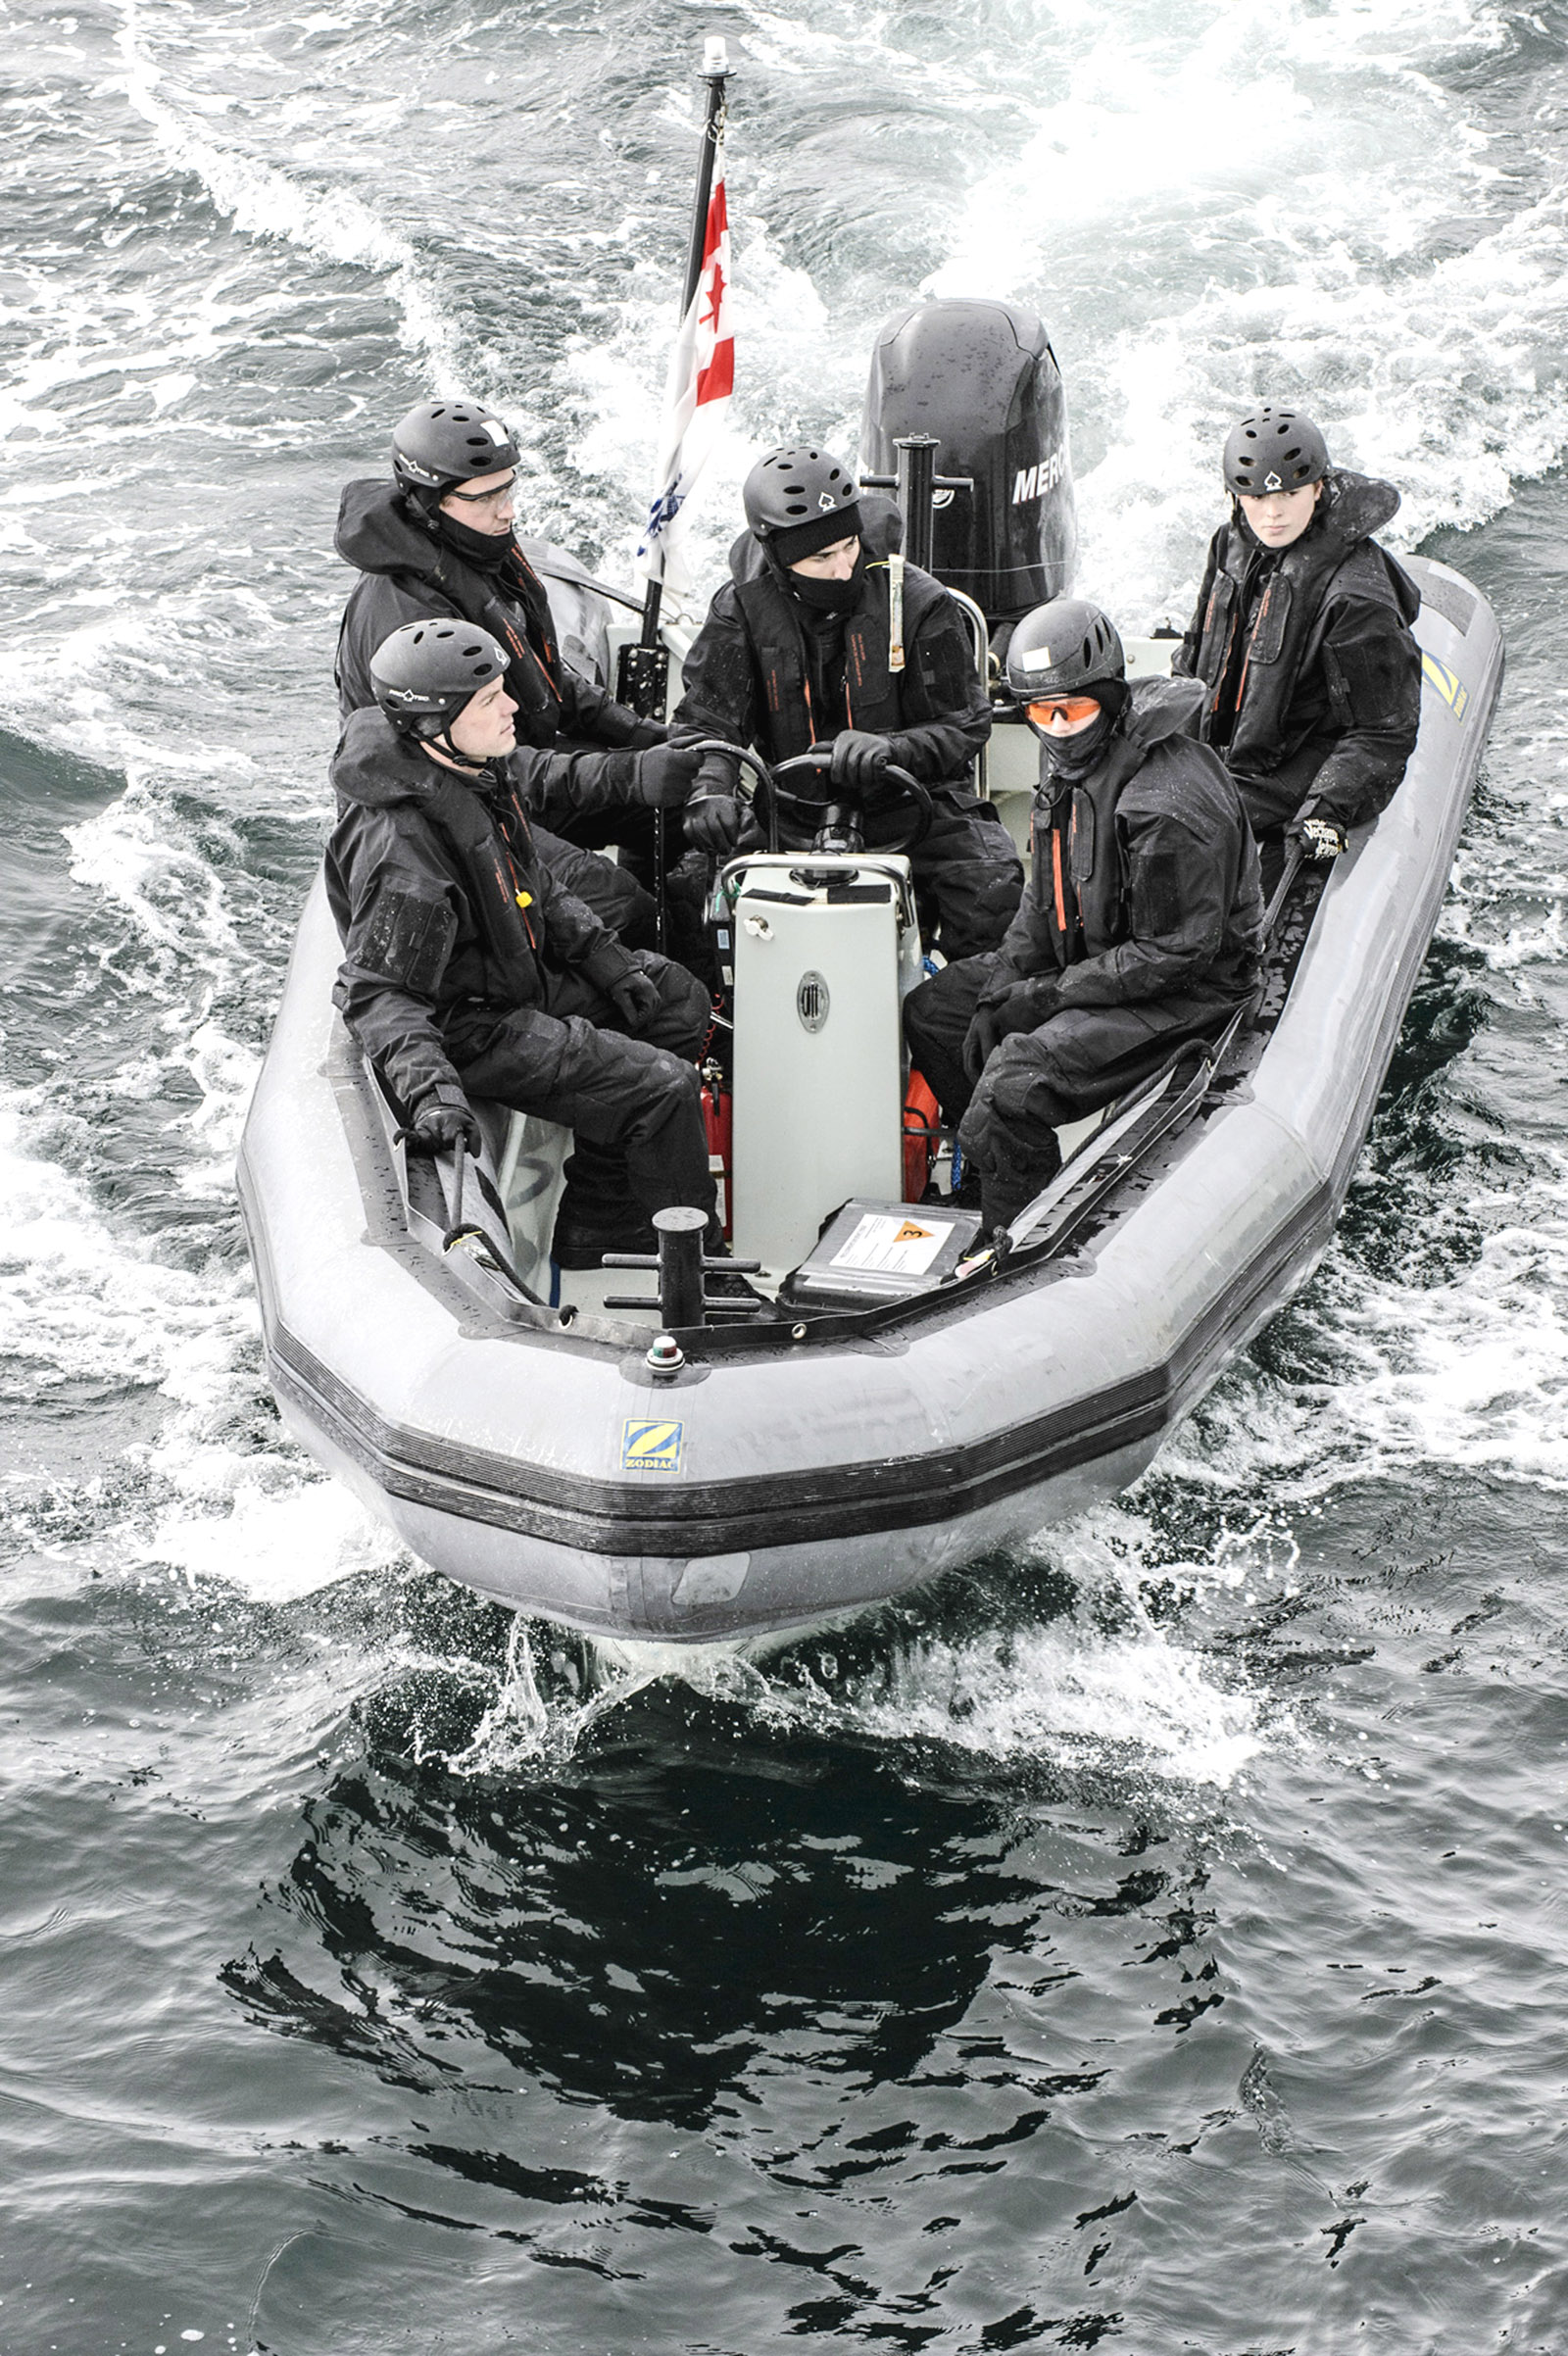 Crew members take out HMCS Edmonton's rigid-hulled inflatable boat on a training exercise in the Beaufort Sea during Op Limpid.